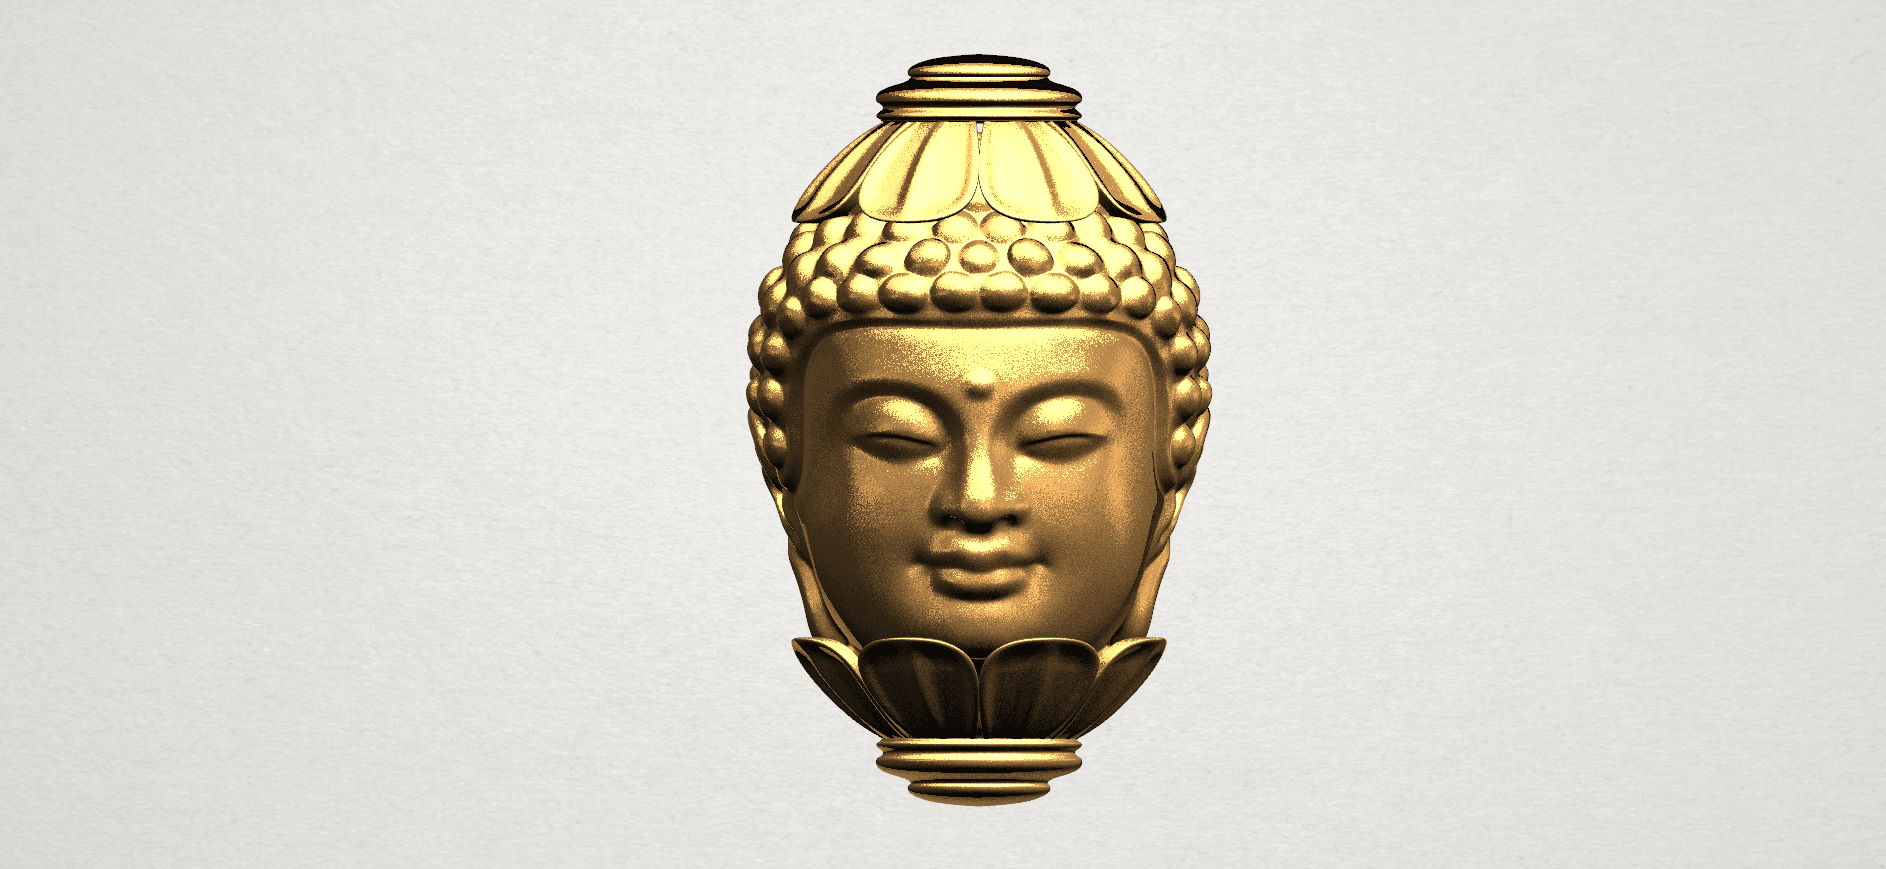 Buddha - Head Sculpture 80mm -A02.png Download free STL file Buddha - Head Sculpture • 3D printing model, GeorgesNikkei